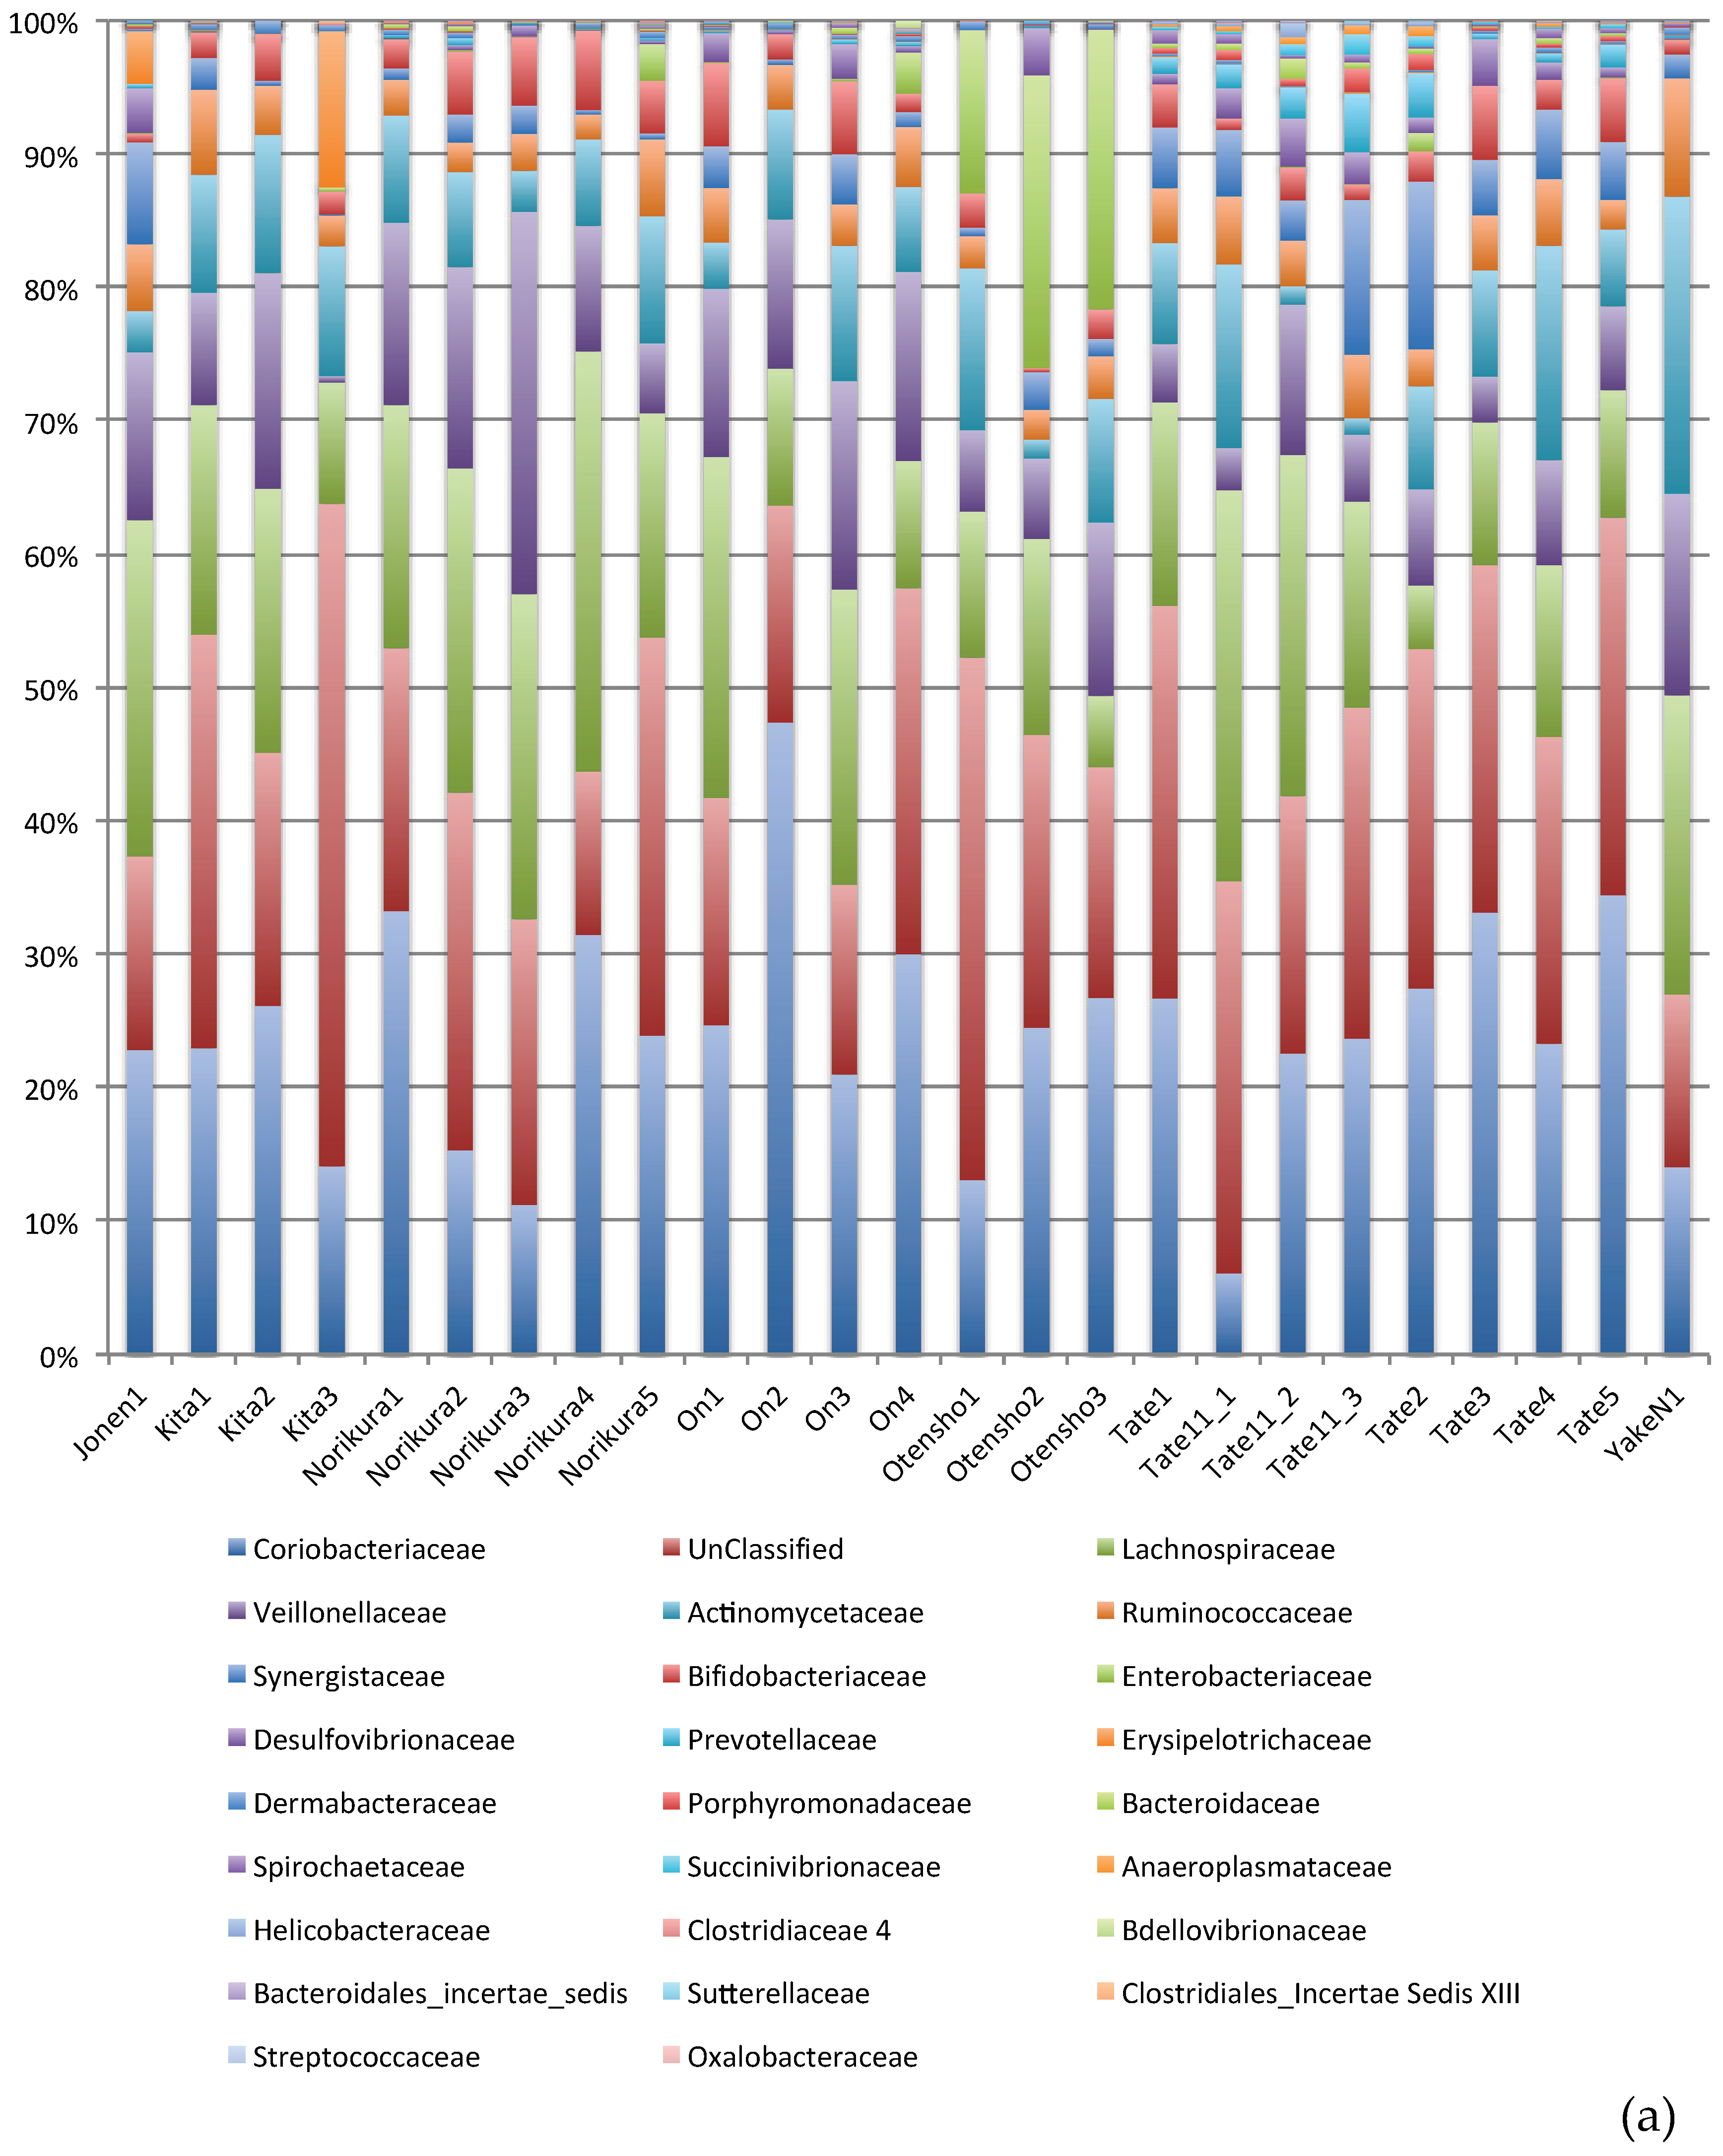 Microorganisms | Free Full-Text | Cecal Microbiome Analyses